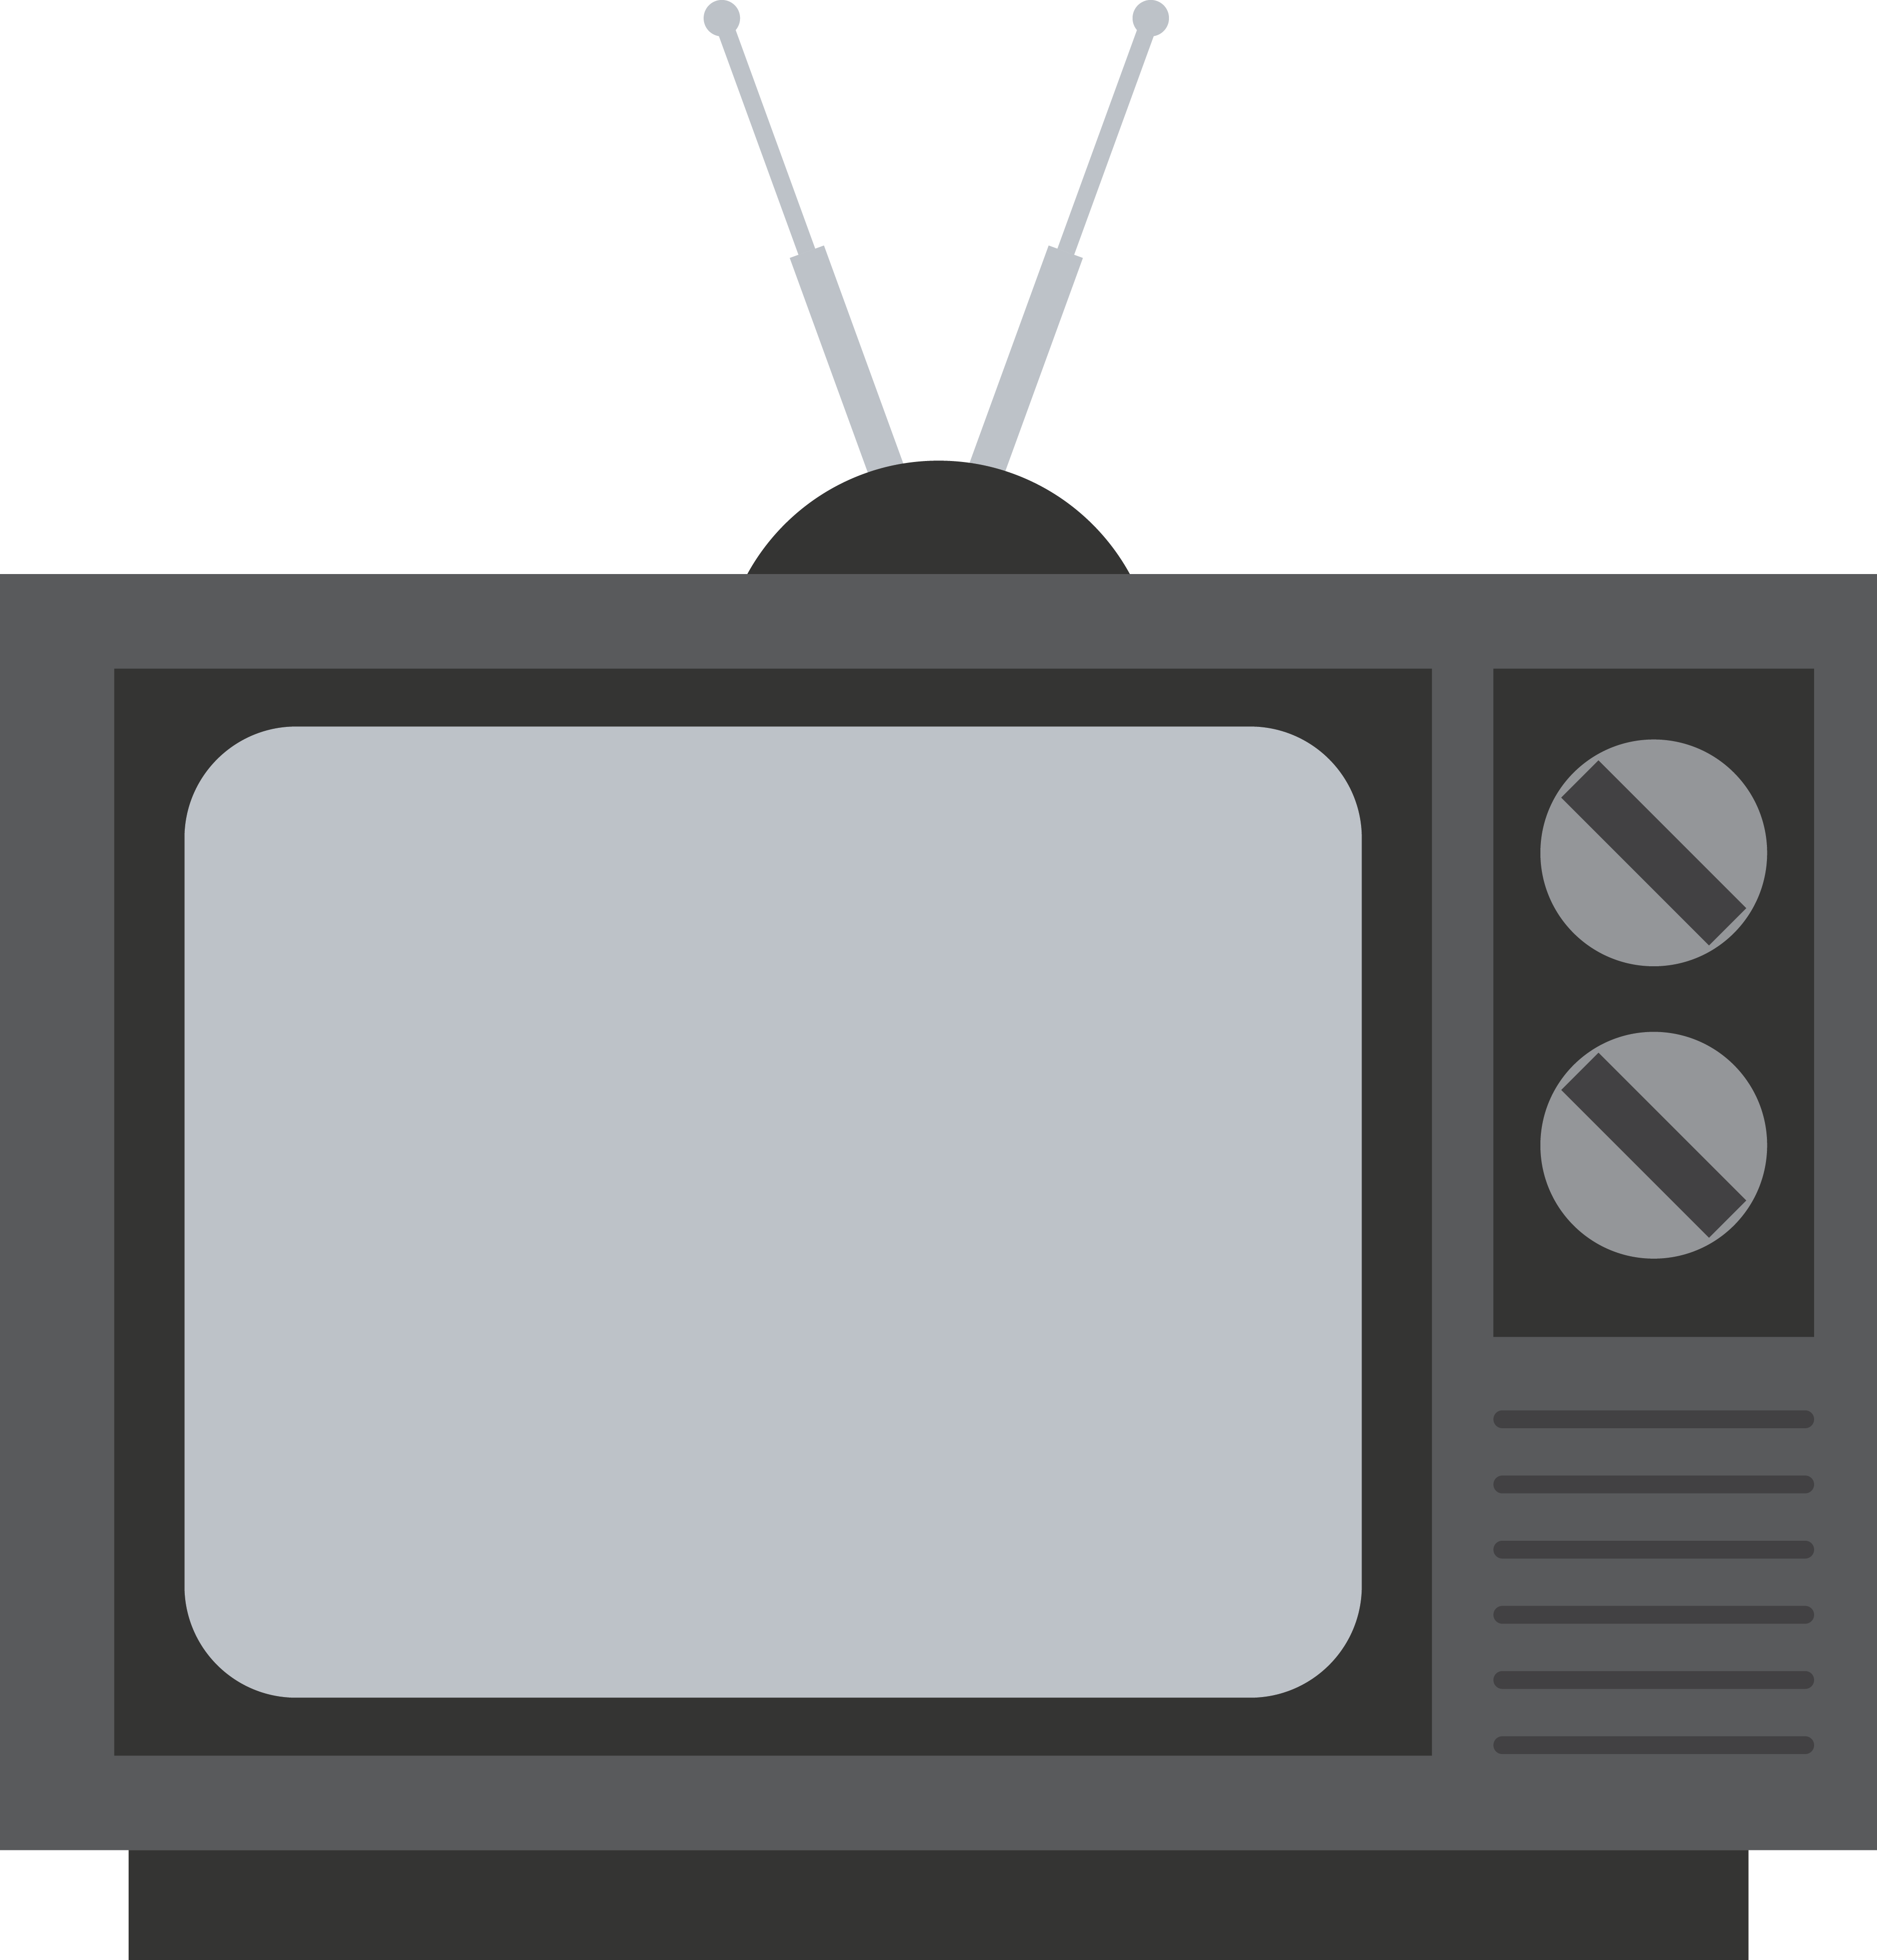 Square free collection download. Television clipart tv star